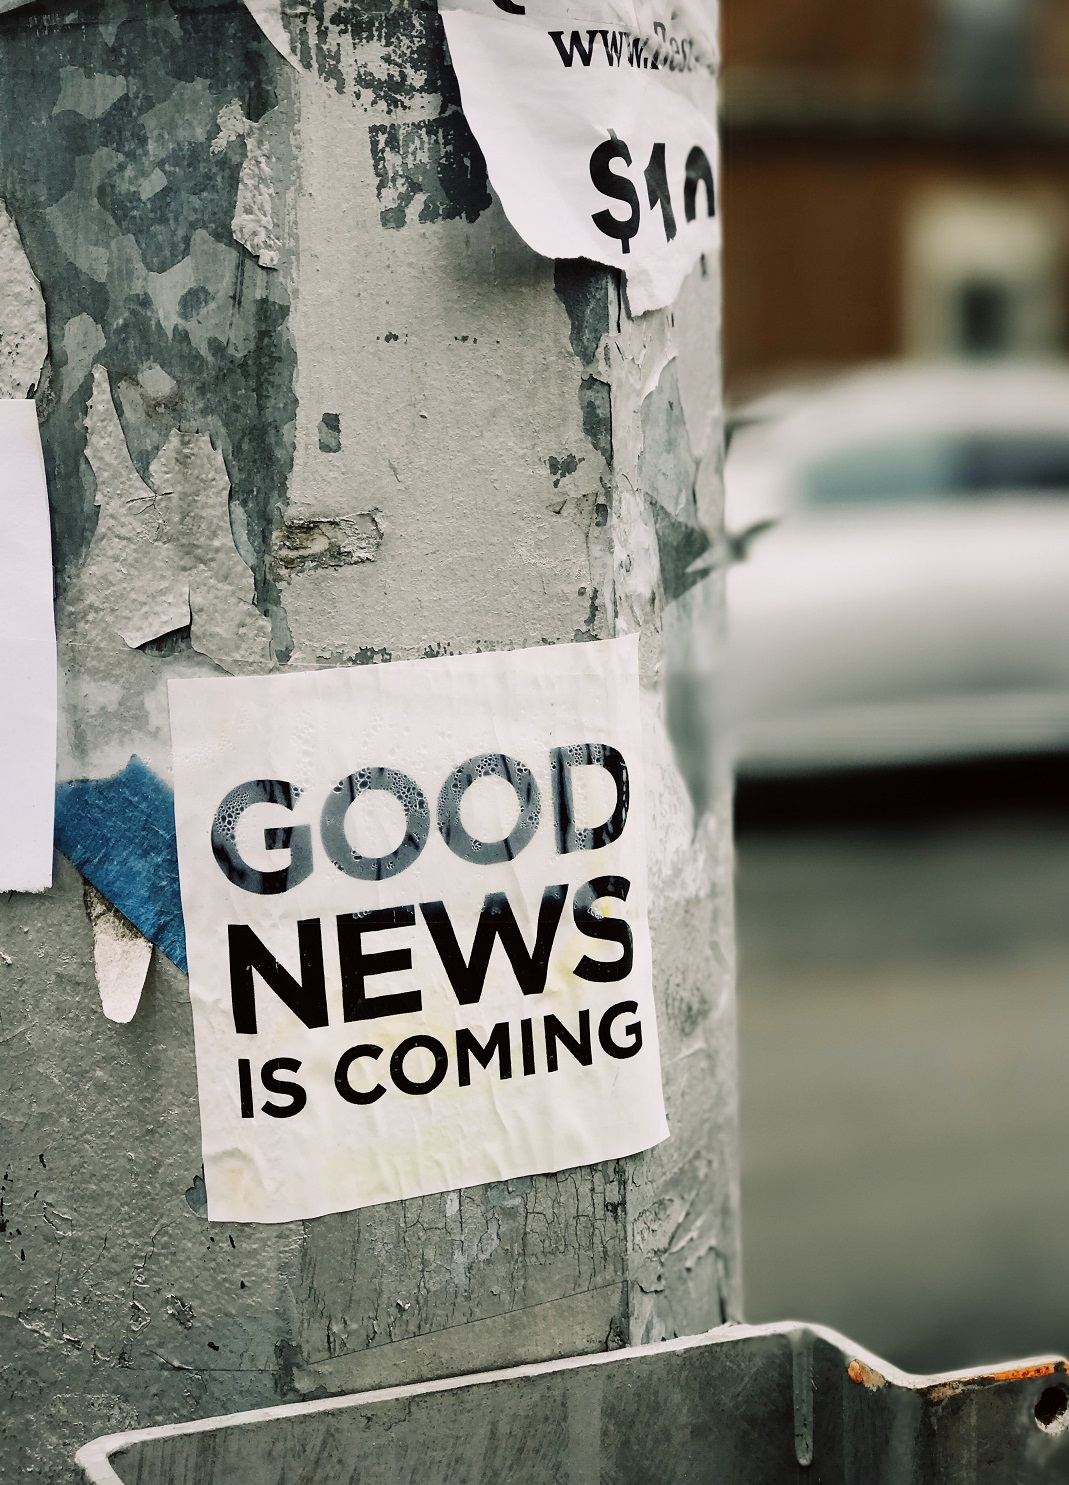 Crypto experts - Good News is coming